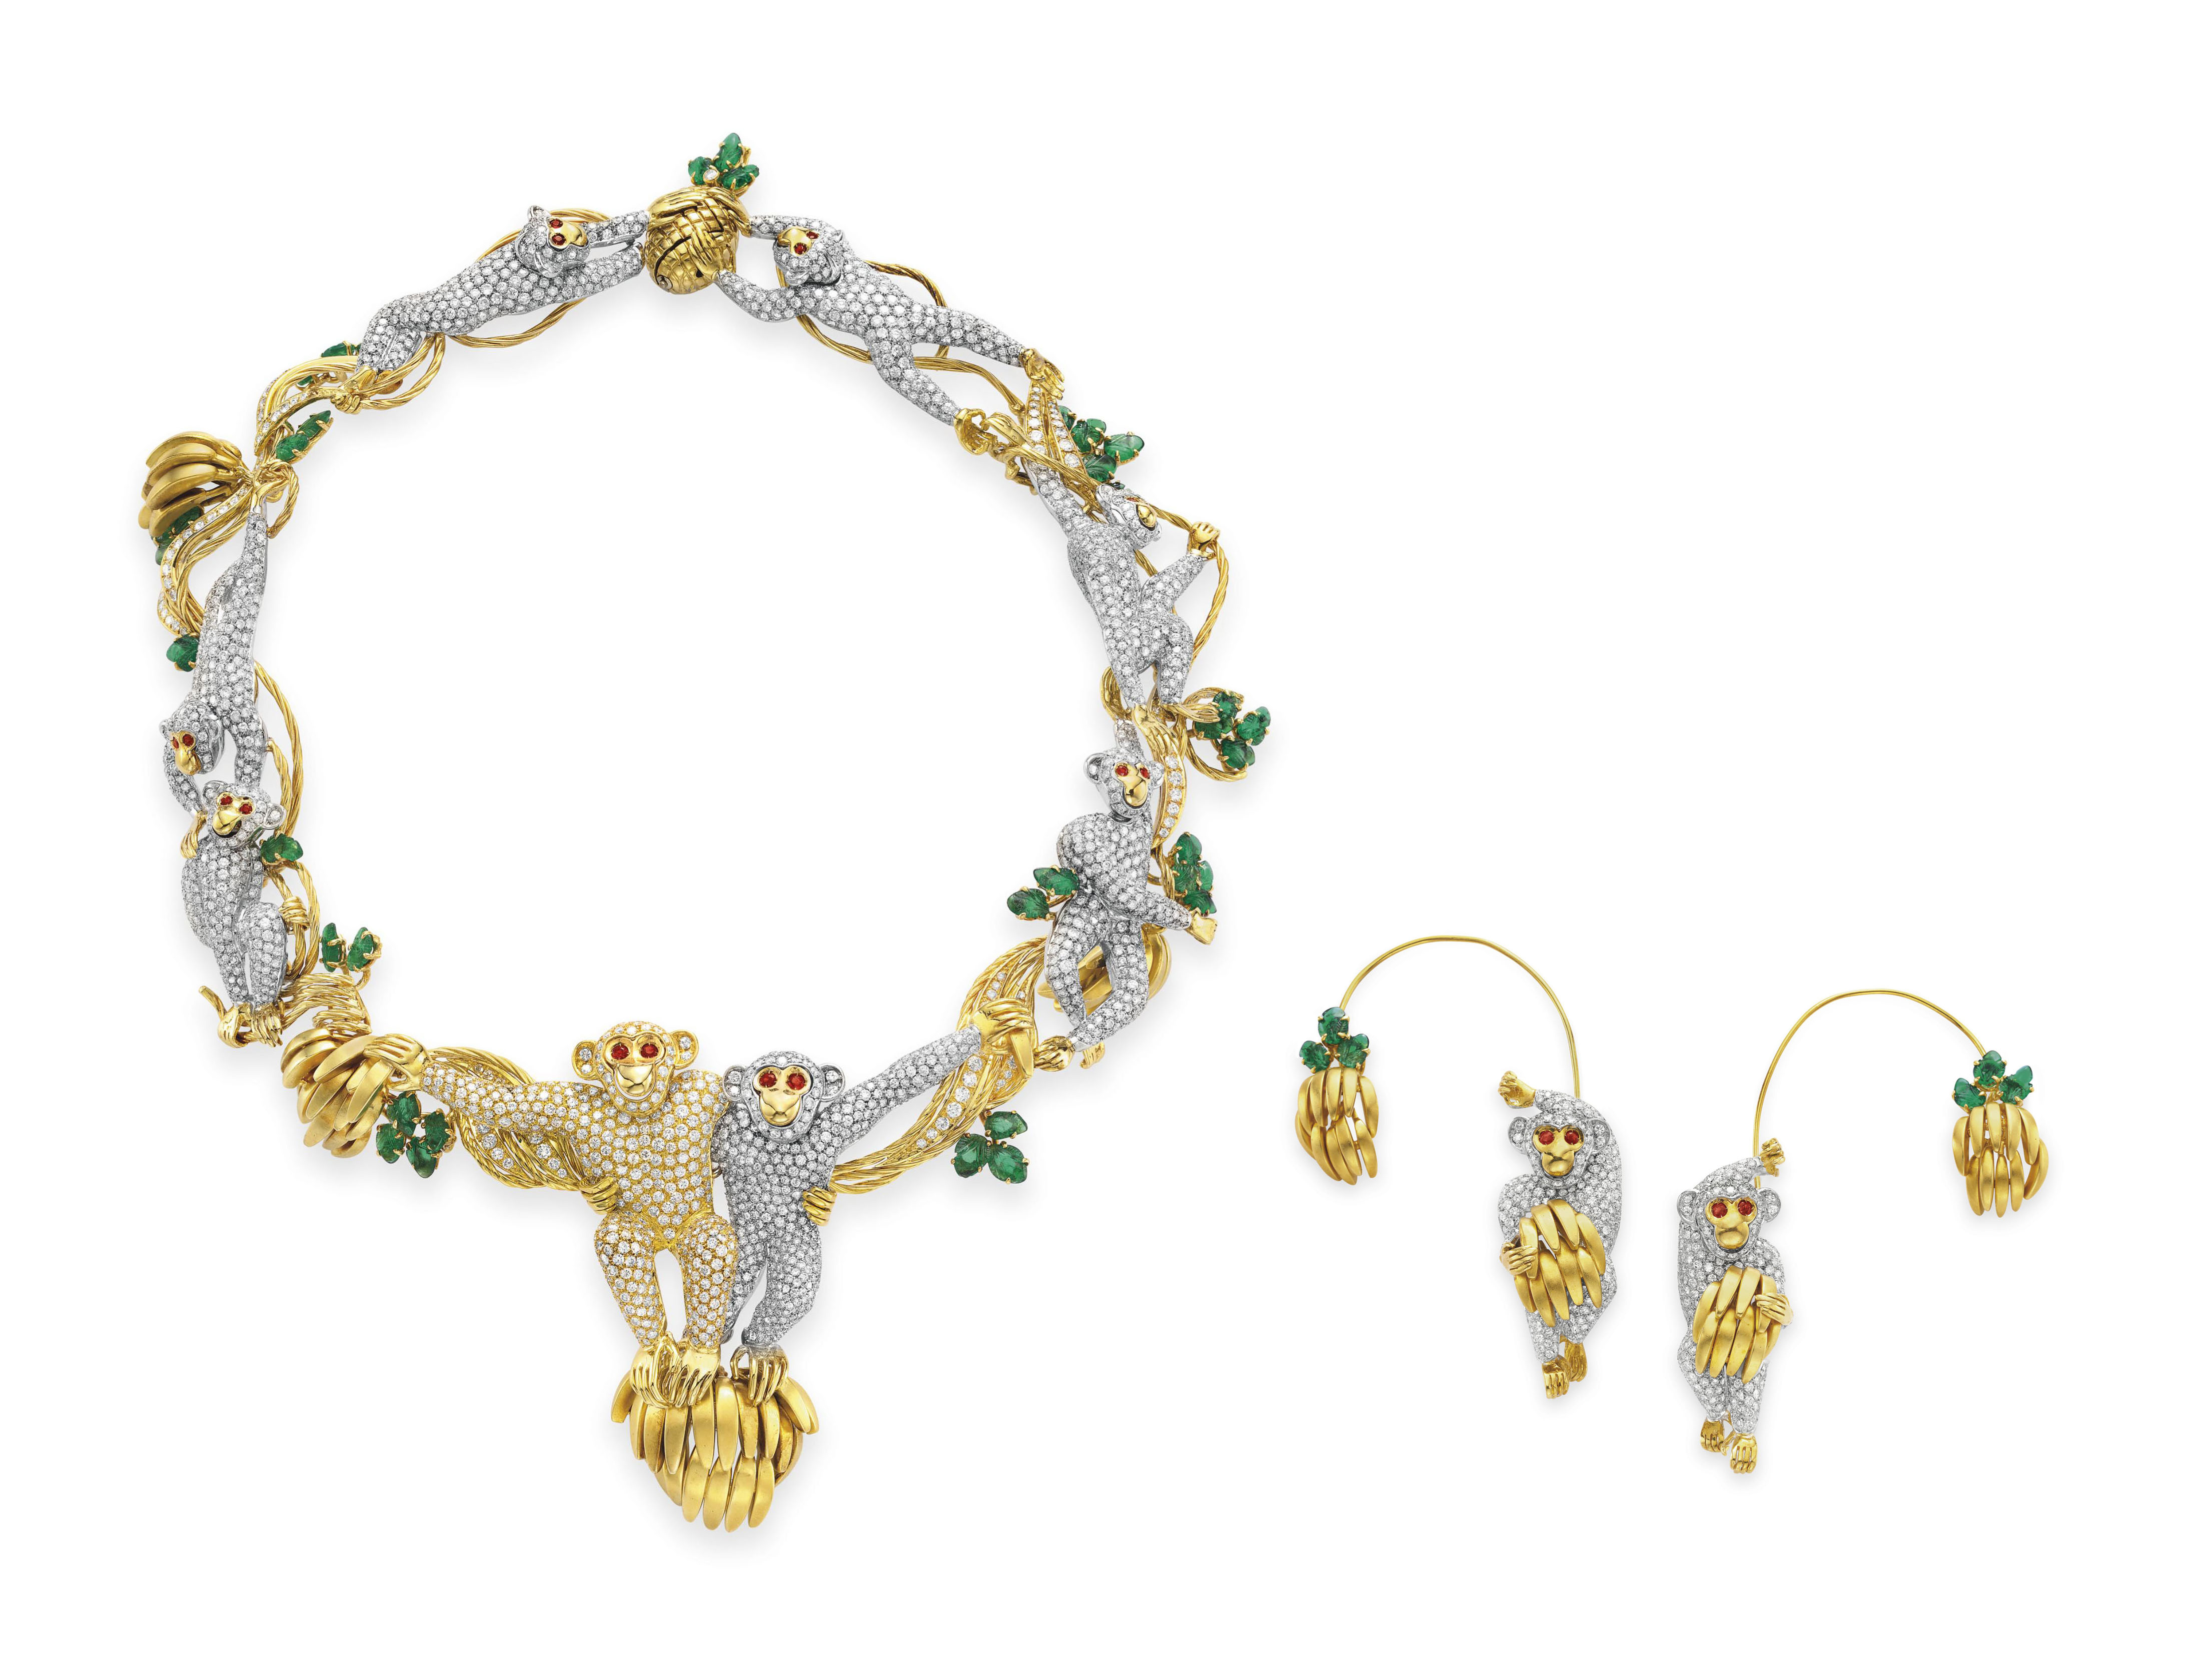 A SUITE OF DIAMOND, EMERALD AND RUBY JEWELRY, BY MASSONI